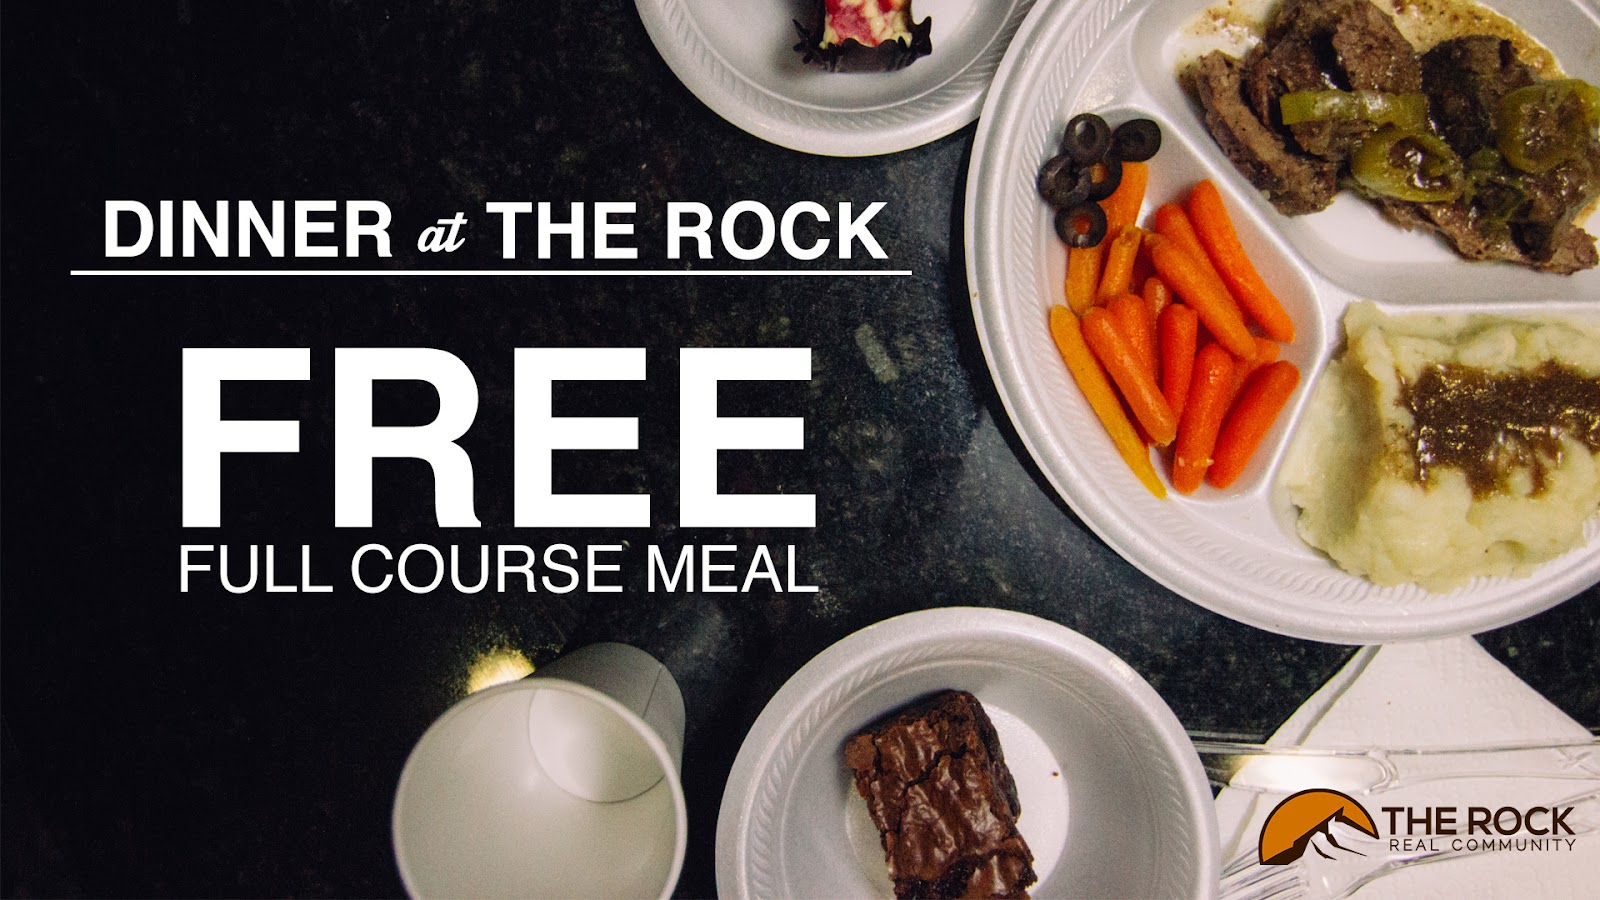 Free Full Course Meal